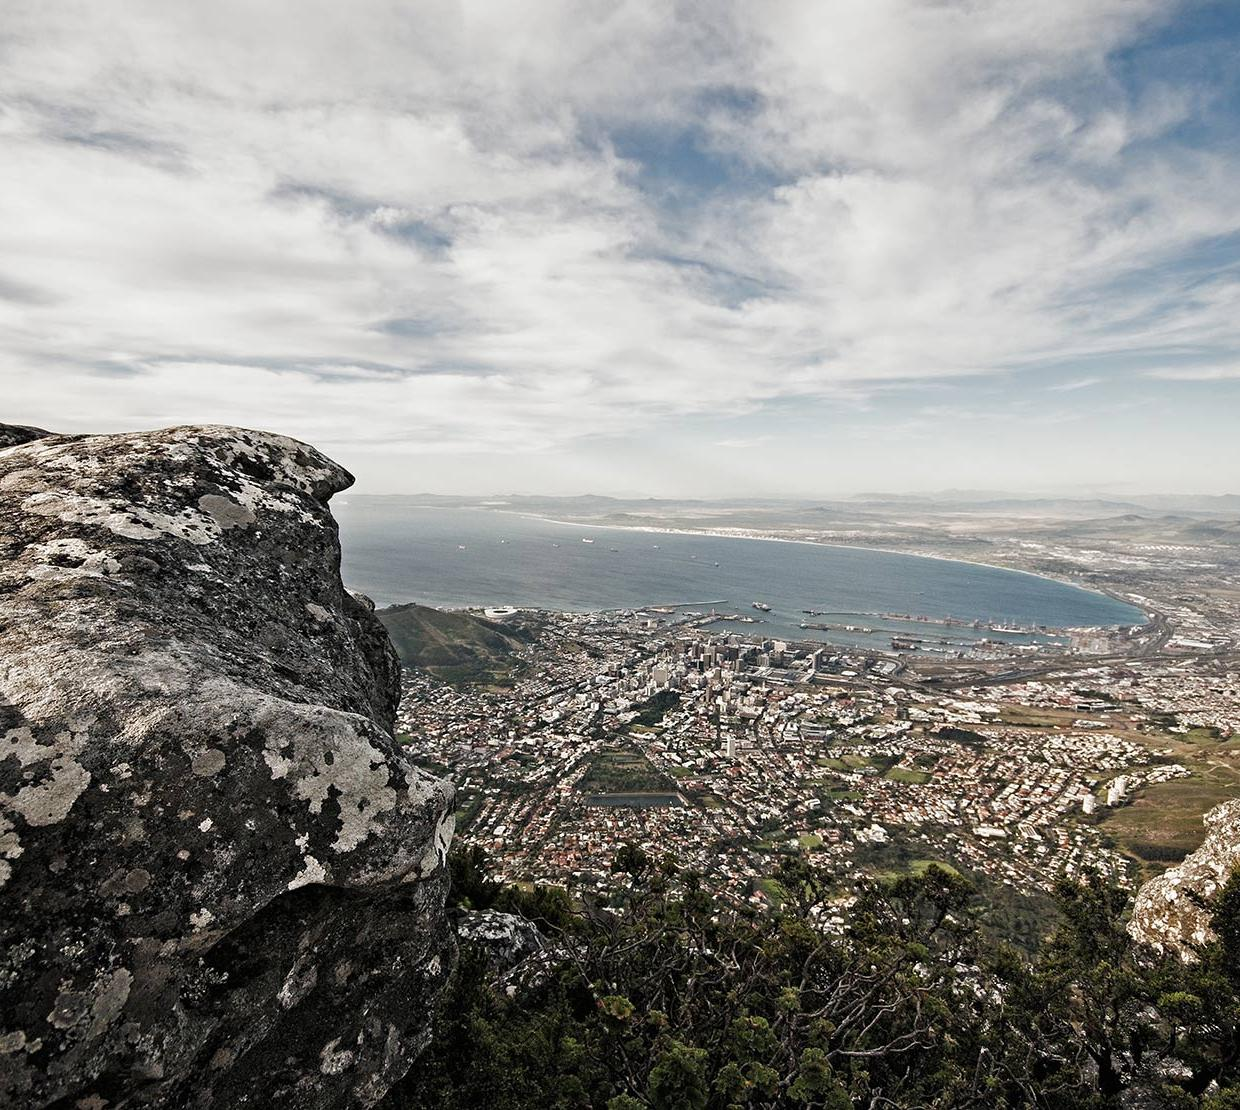 South African cityscape along coast